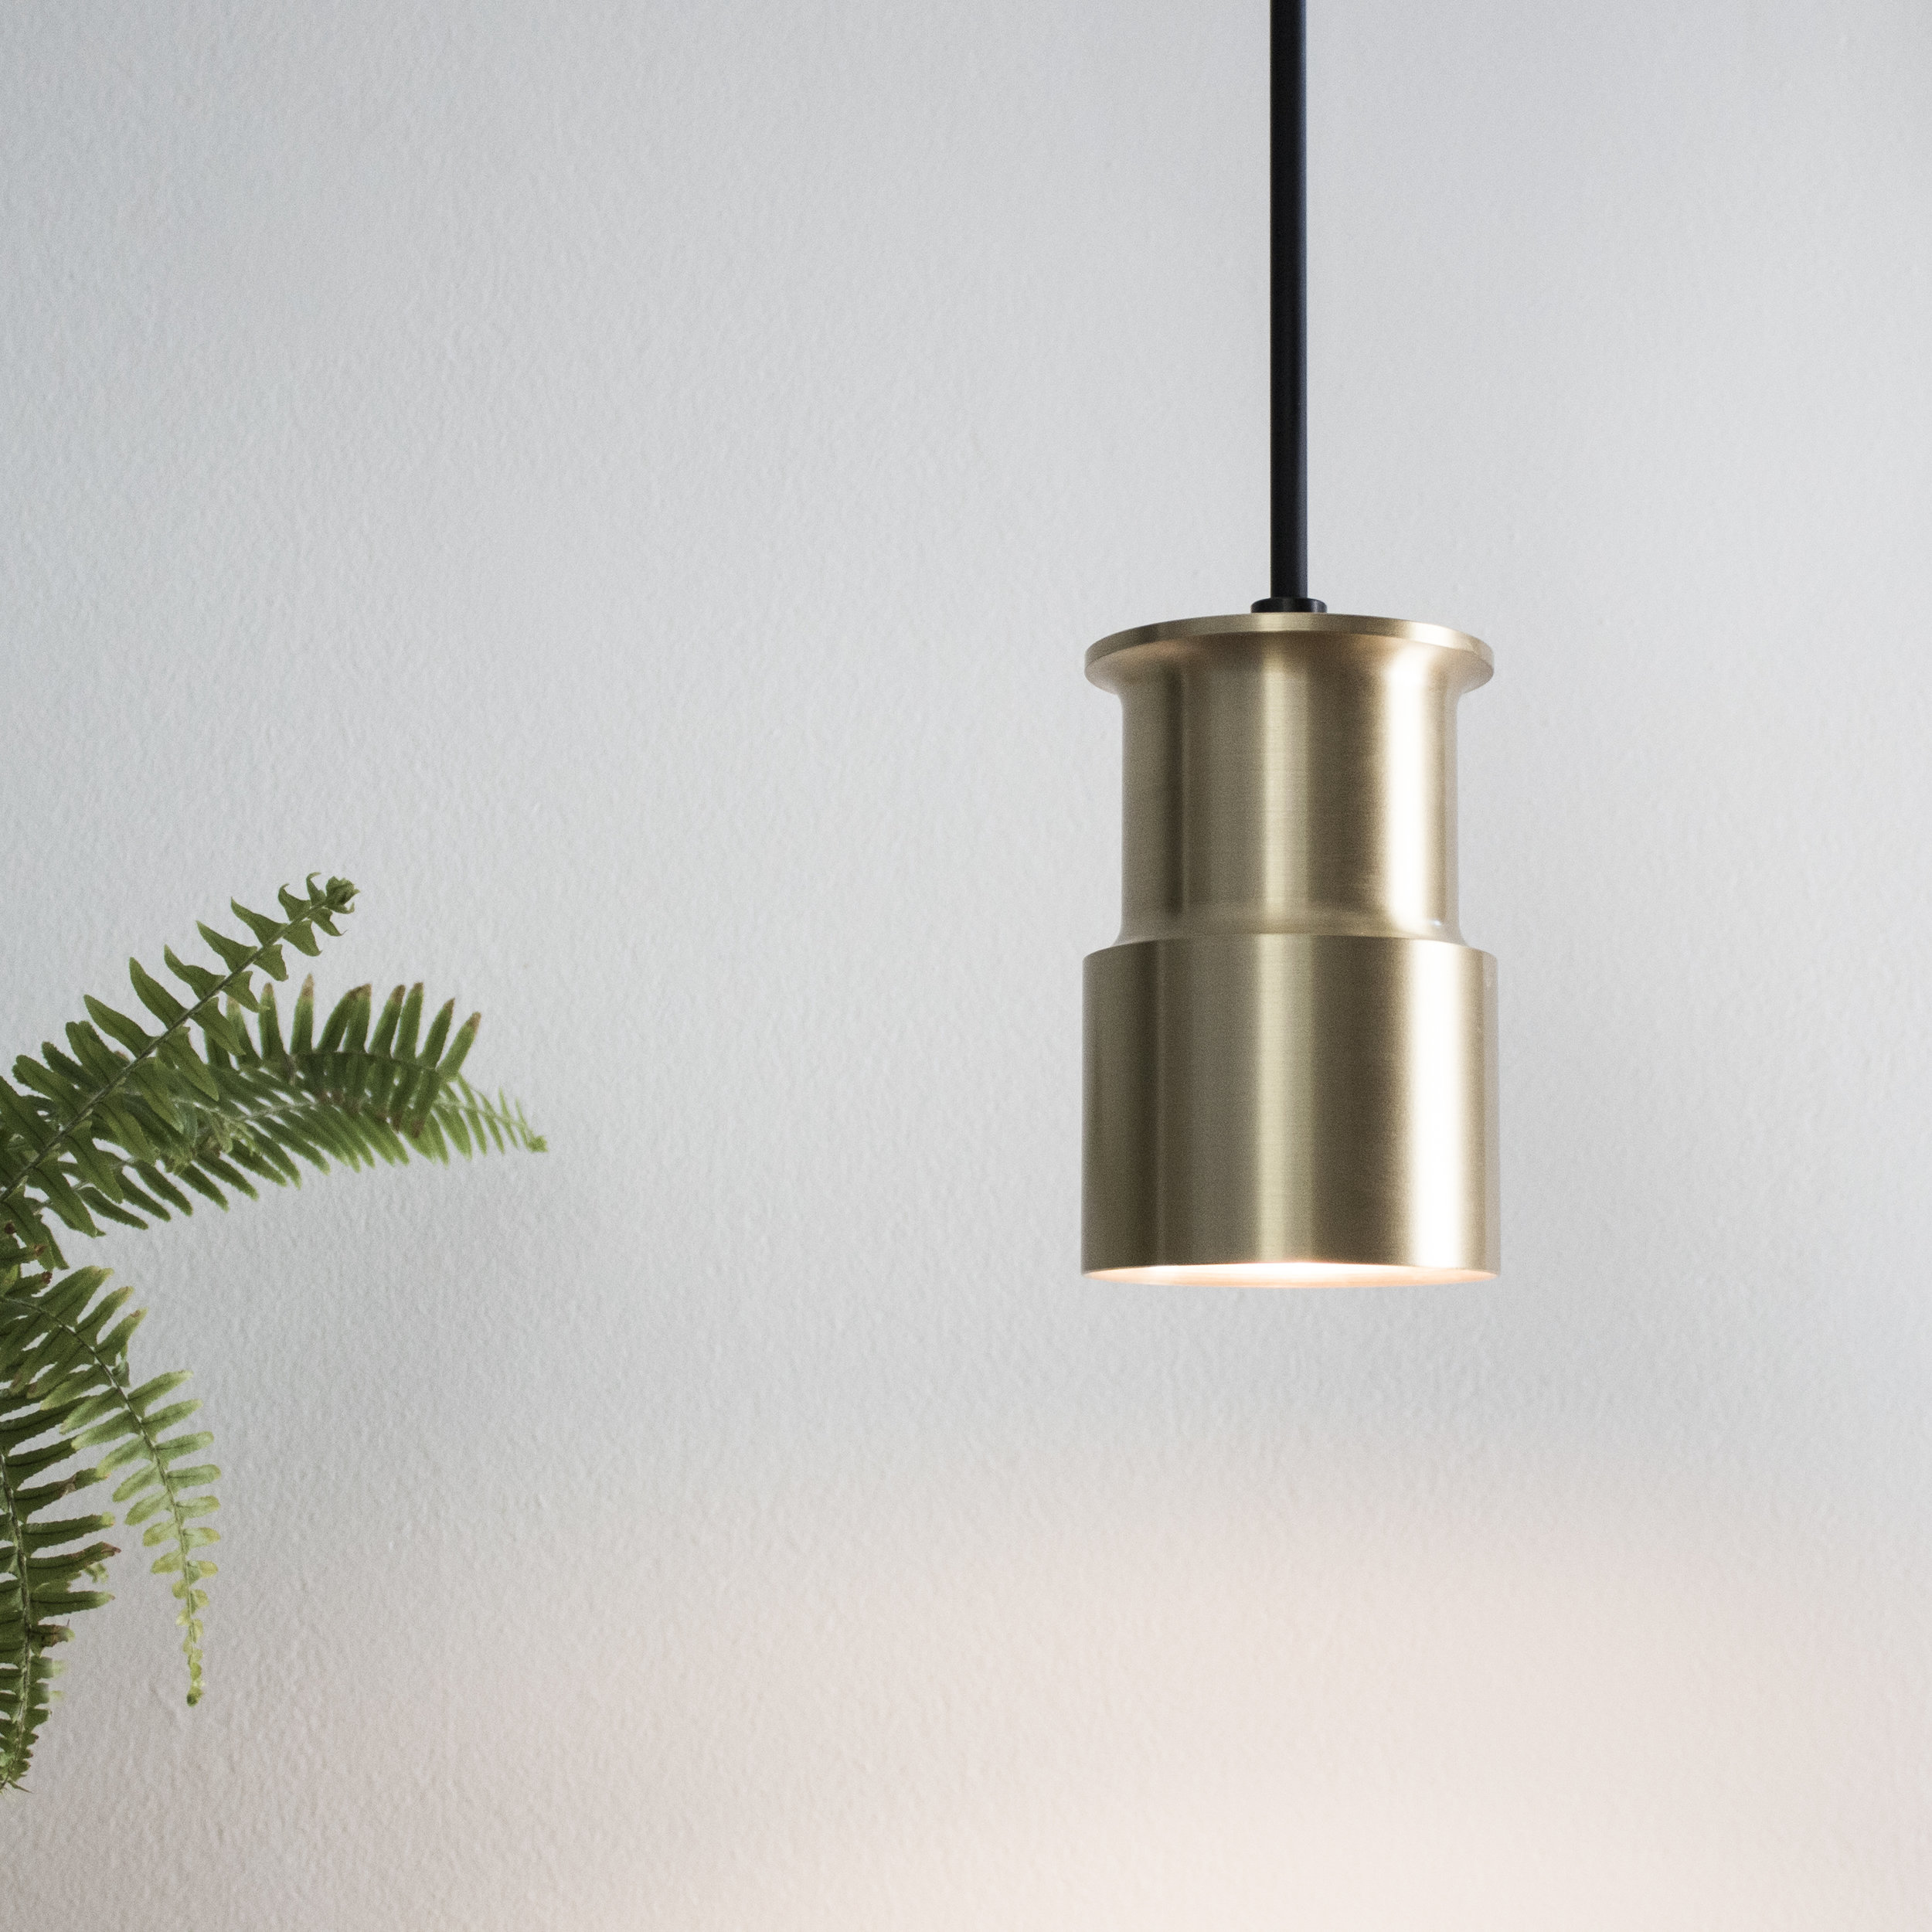 Bowden Pendant in Natural Brass Finish